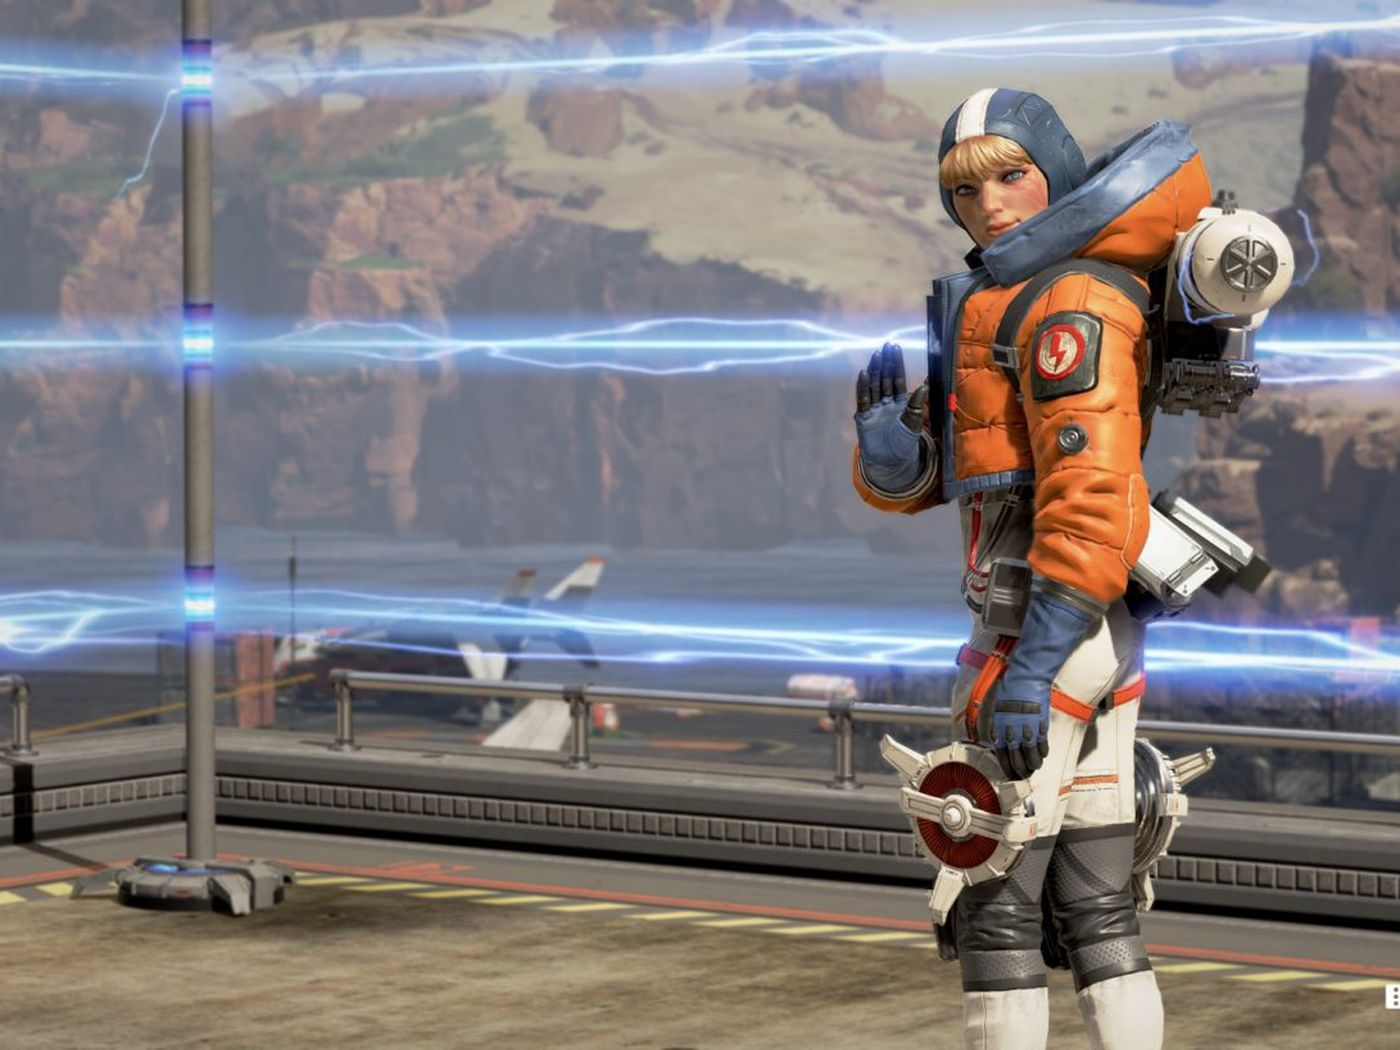 Wattson could be in line to get an Apex Legends heirloom after Bangalore and Caustic.